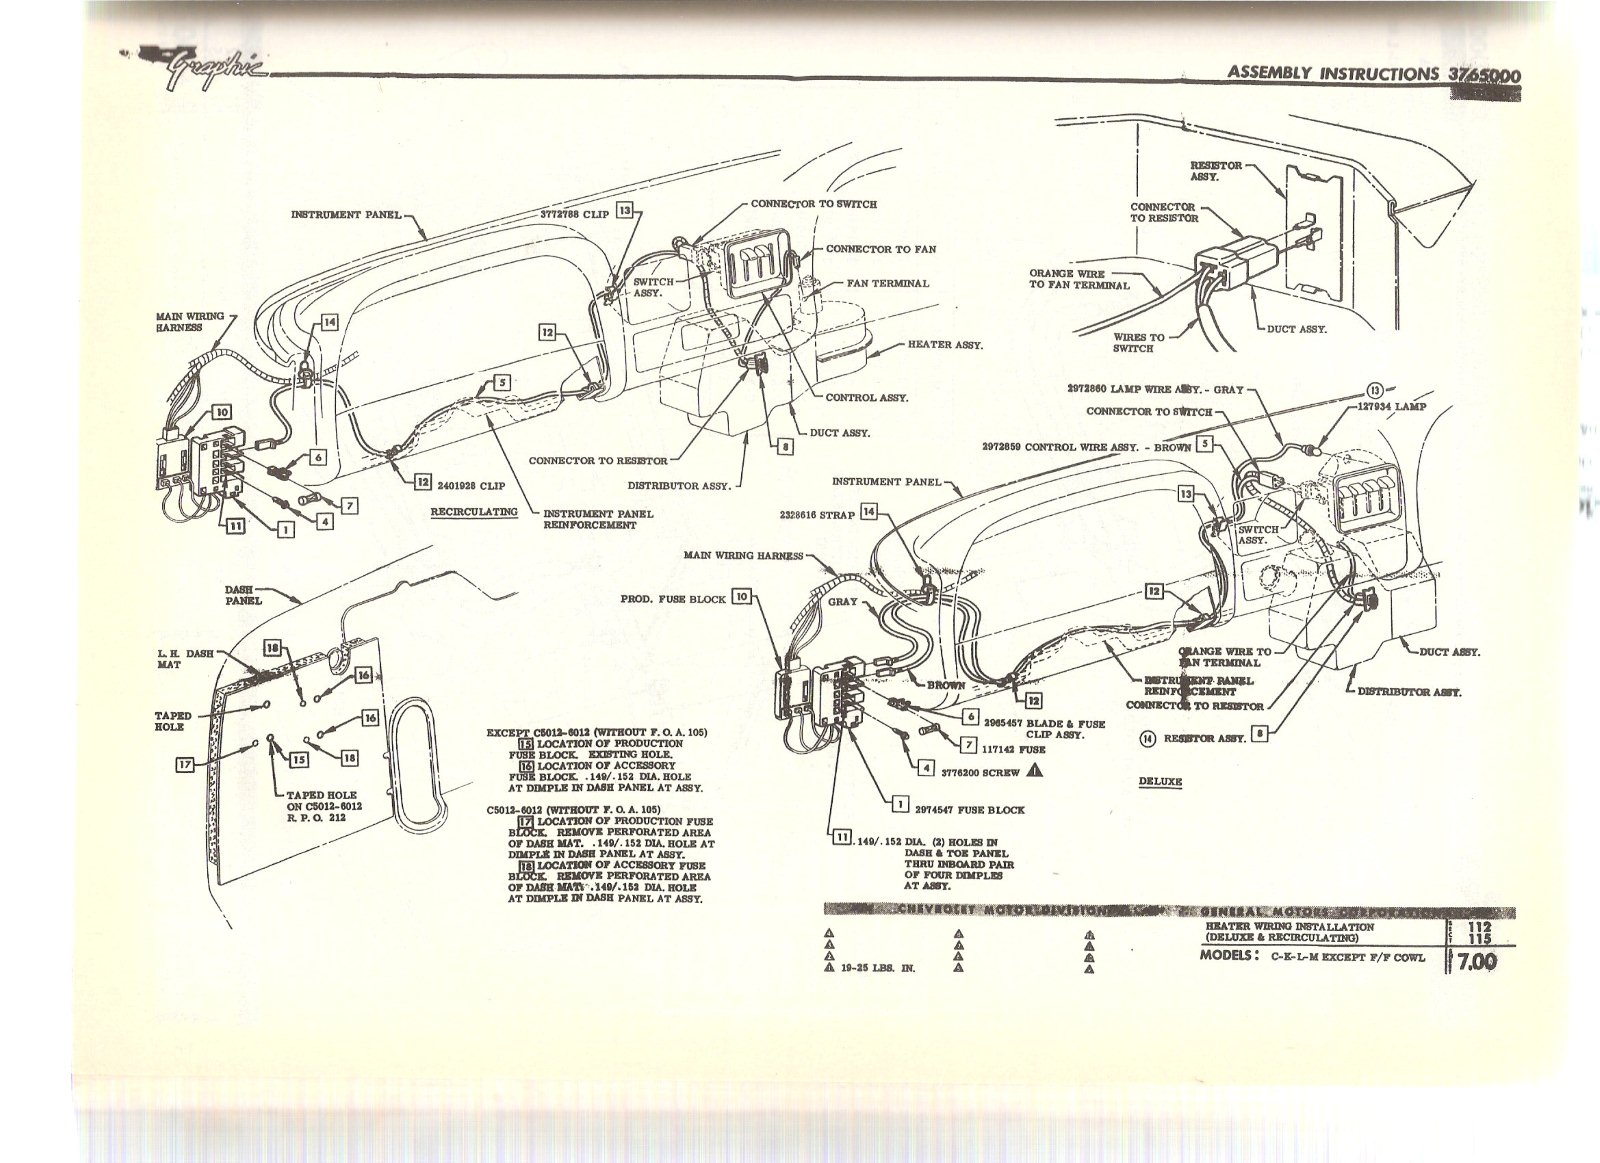 1985 chevy pickup wiring diagram schematics and wiring diagrams 1985 chevy silverado wiring diagram diagrams base